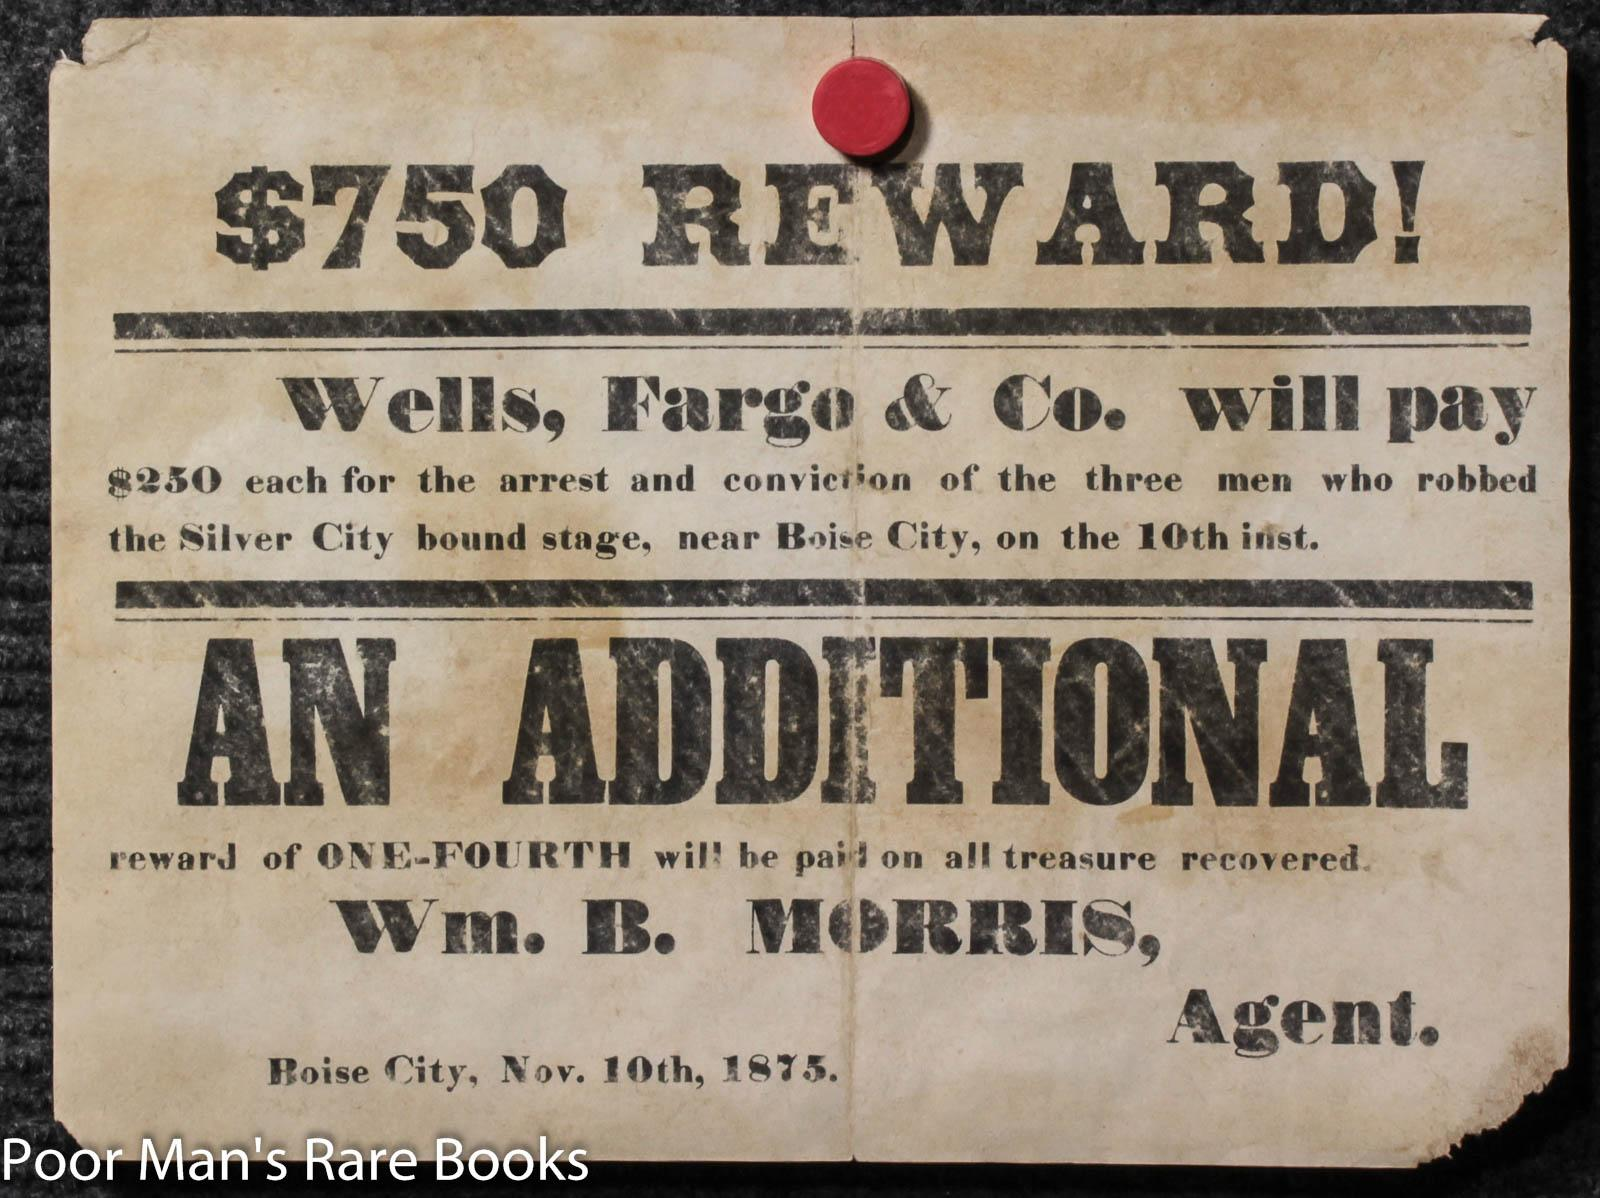 Wanted Poster $750 Reward, Wells Fargo Will Pay For Robbery Of Stage 1875: Wm B Morris, Agent